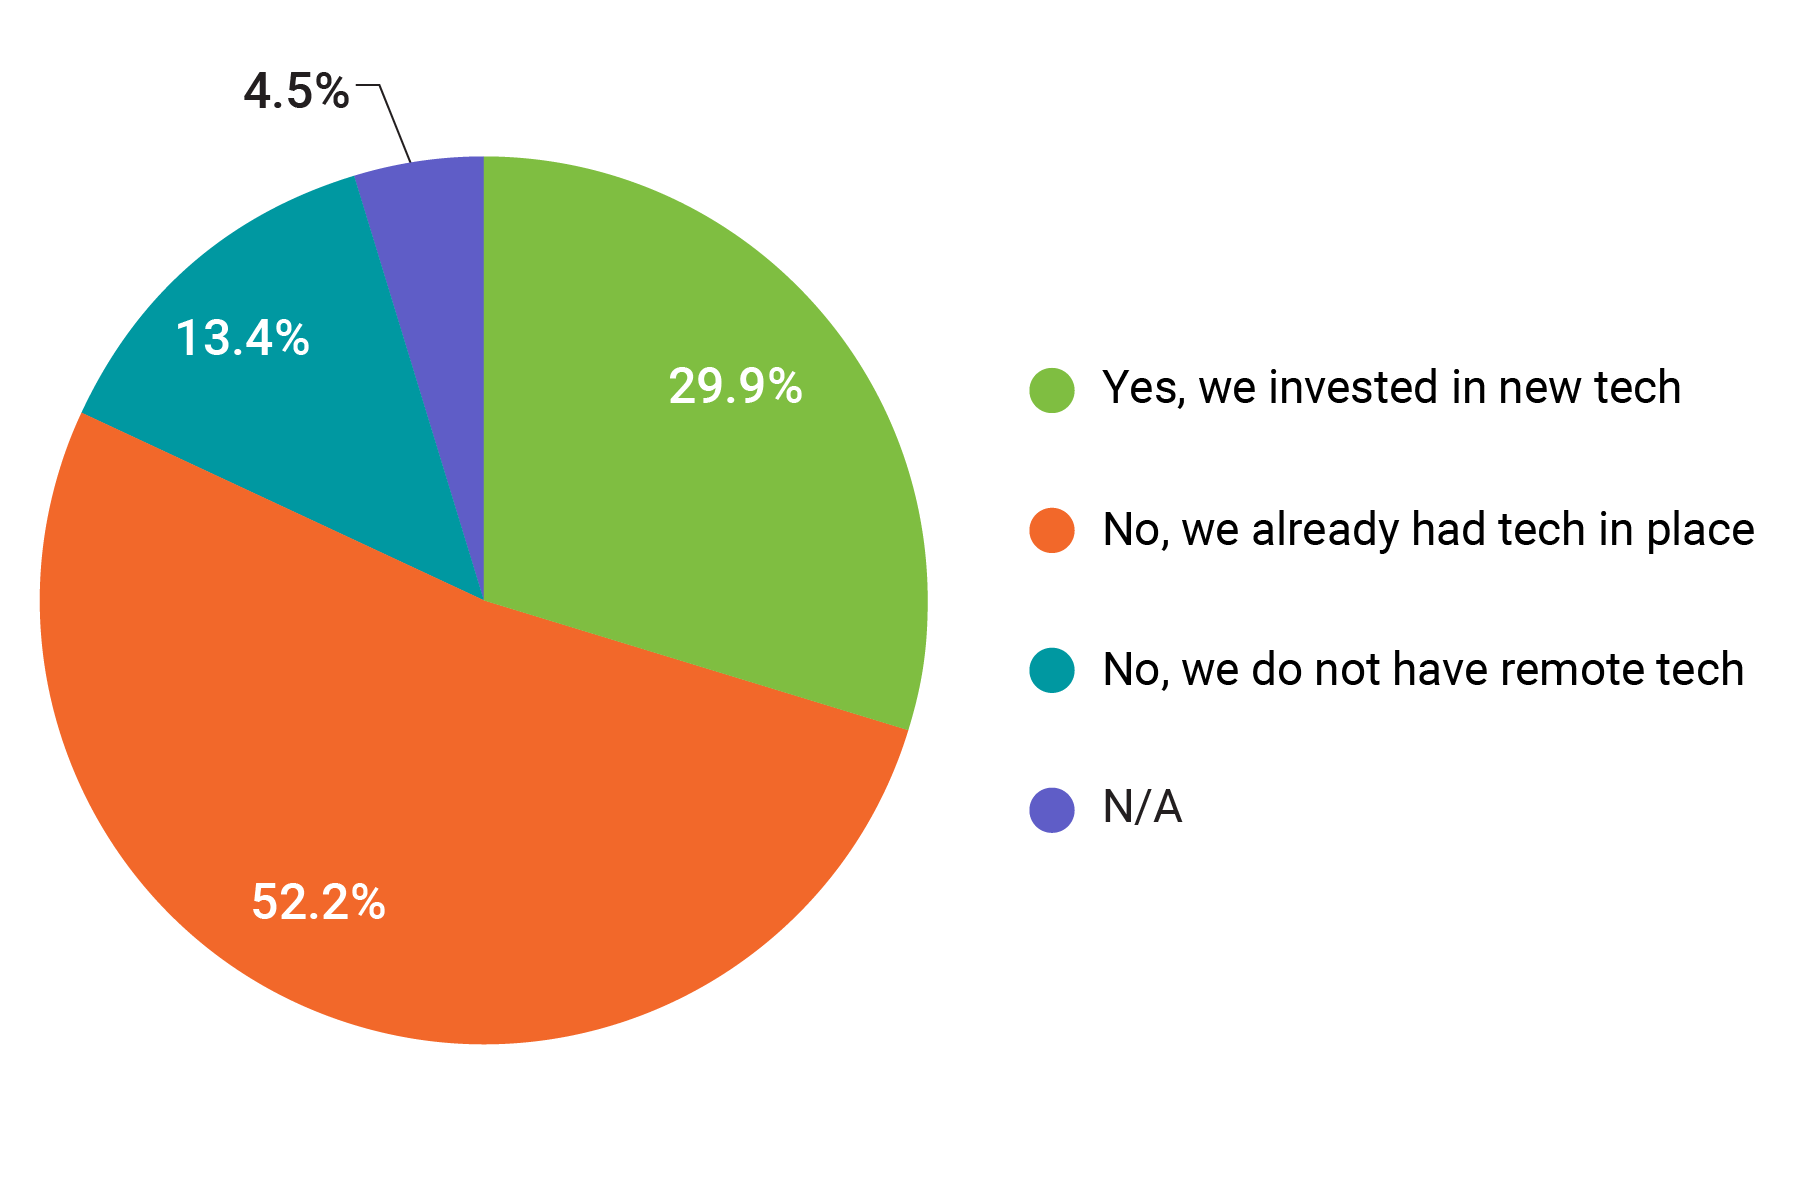 invest in new technology covid19 pie chart